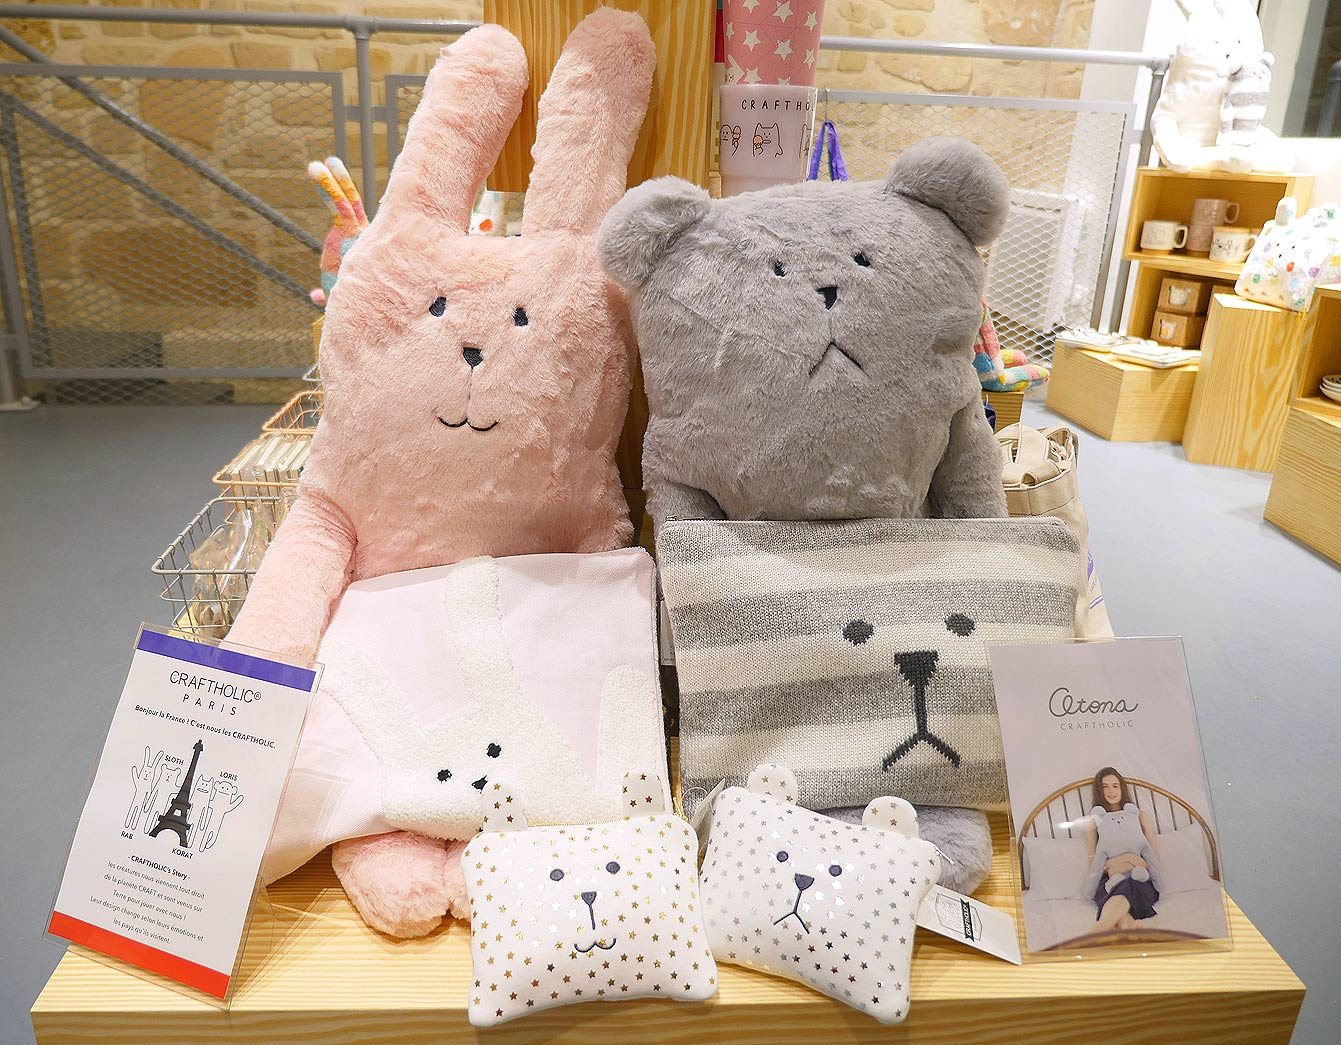 Craftholic : les peluches japonaises, exclusivité Paris